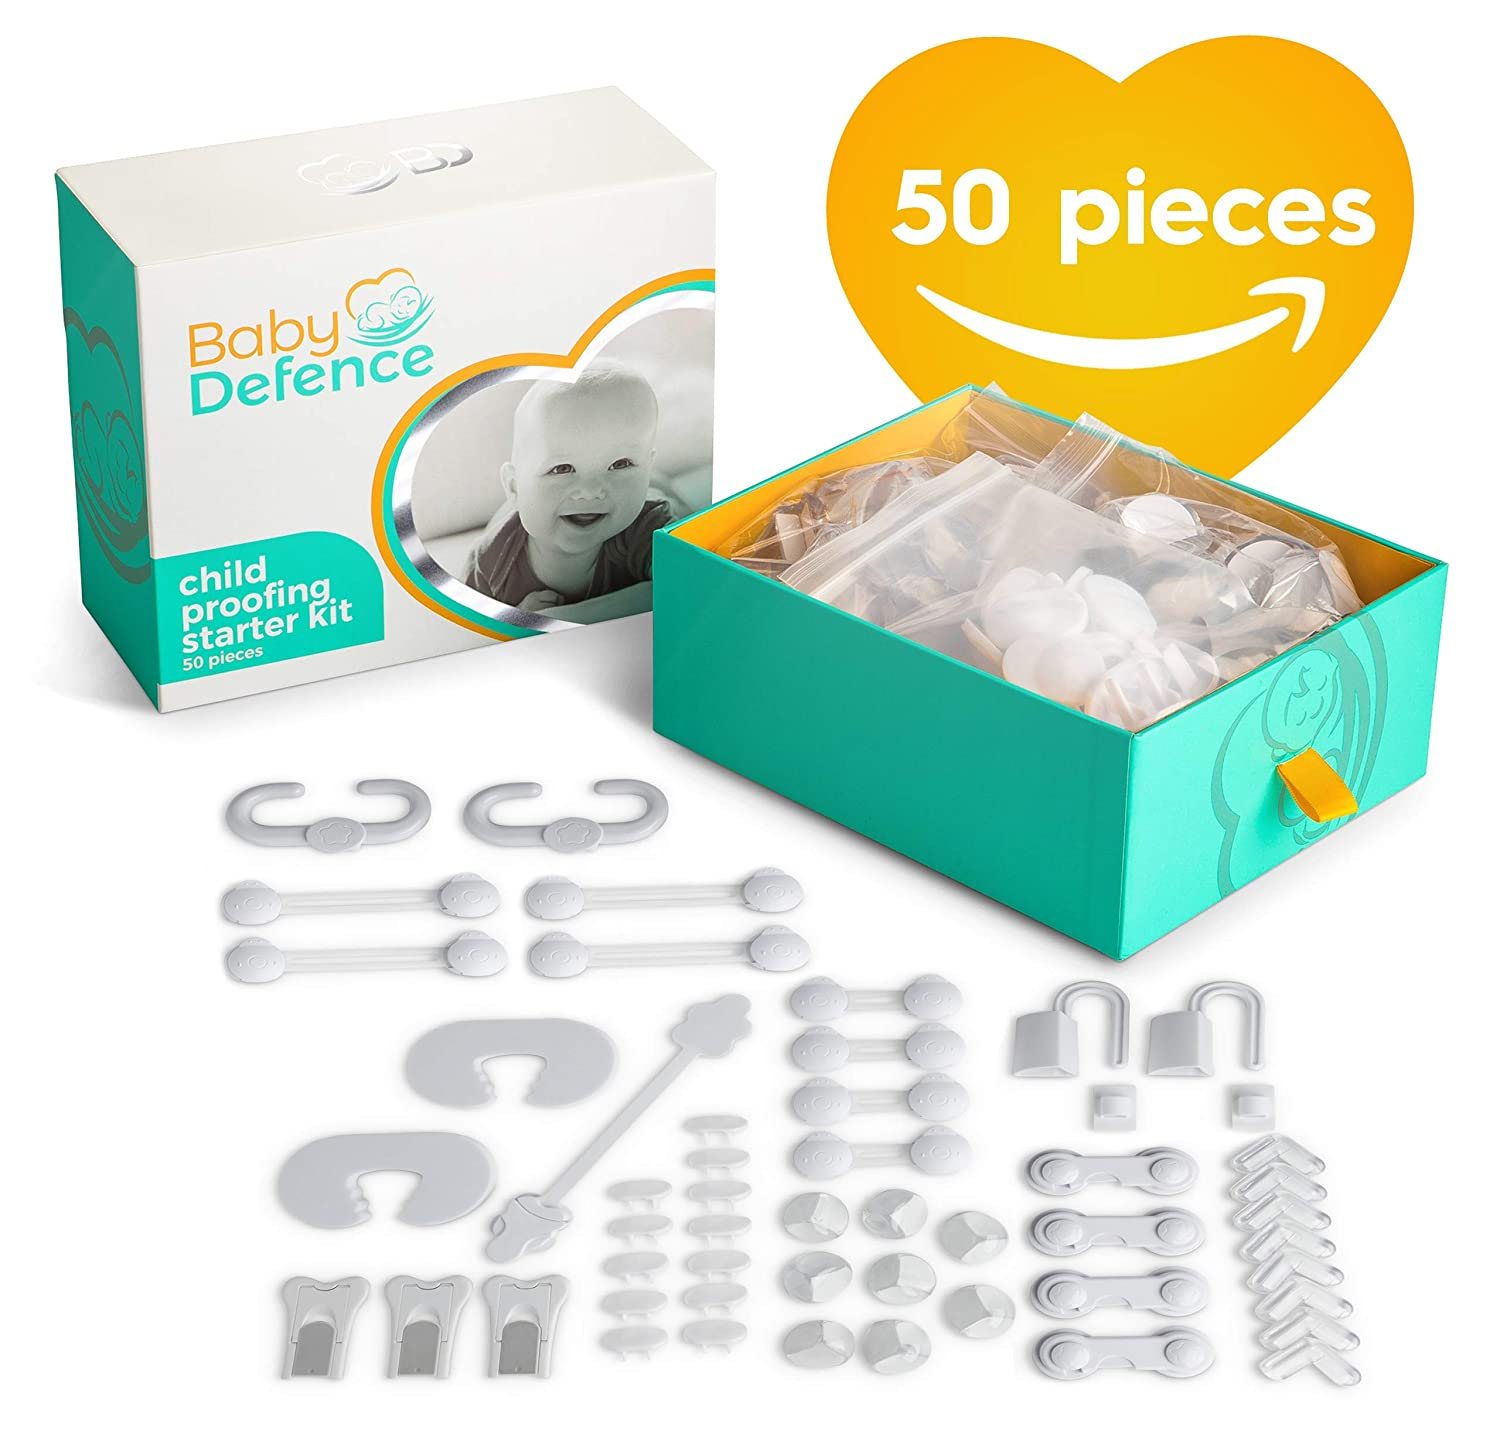 Complete Baby Proofing Kit, 50 pc- Essential Baby Shower Gift -Childproofing Safety Proof House Kits with Door and Cabinet Locks, Latches, Protective Guards, and Plug Covers for Infants, Toddlers.